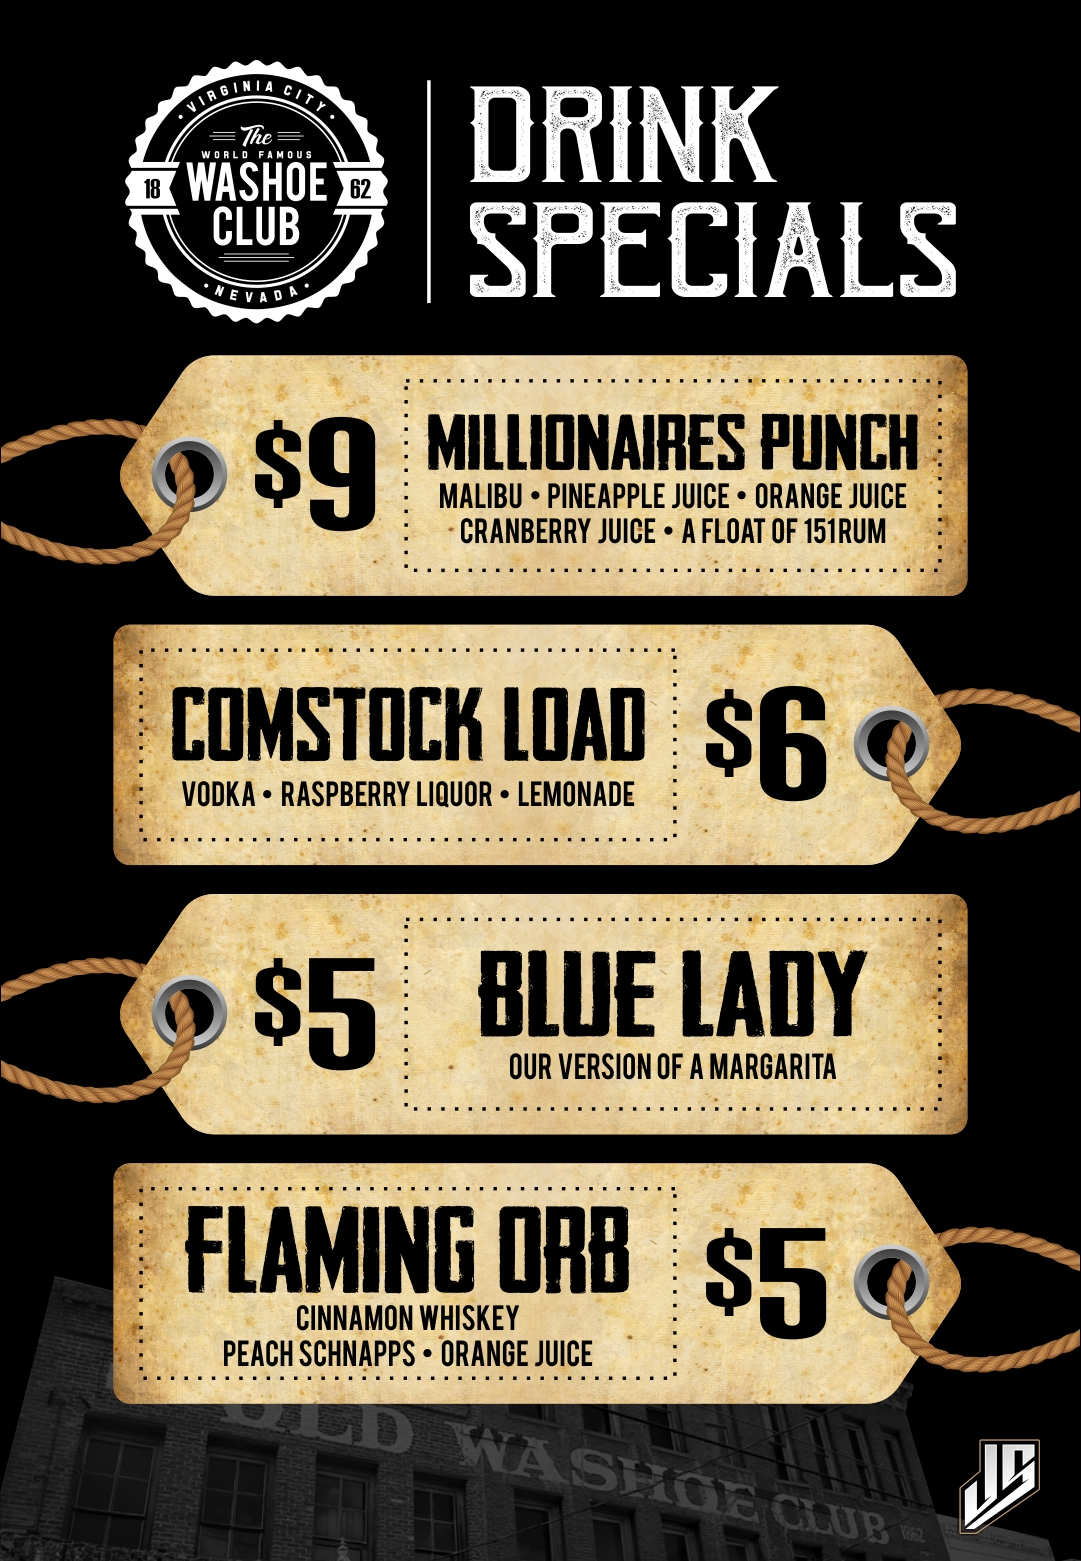 Washoe Club Drink Specials 1.jpg